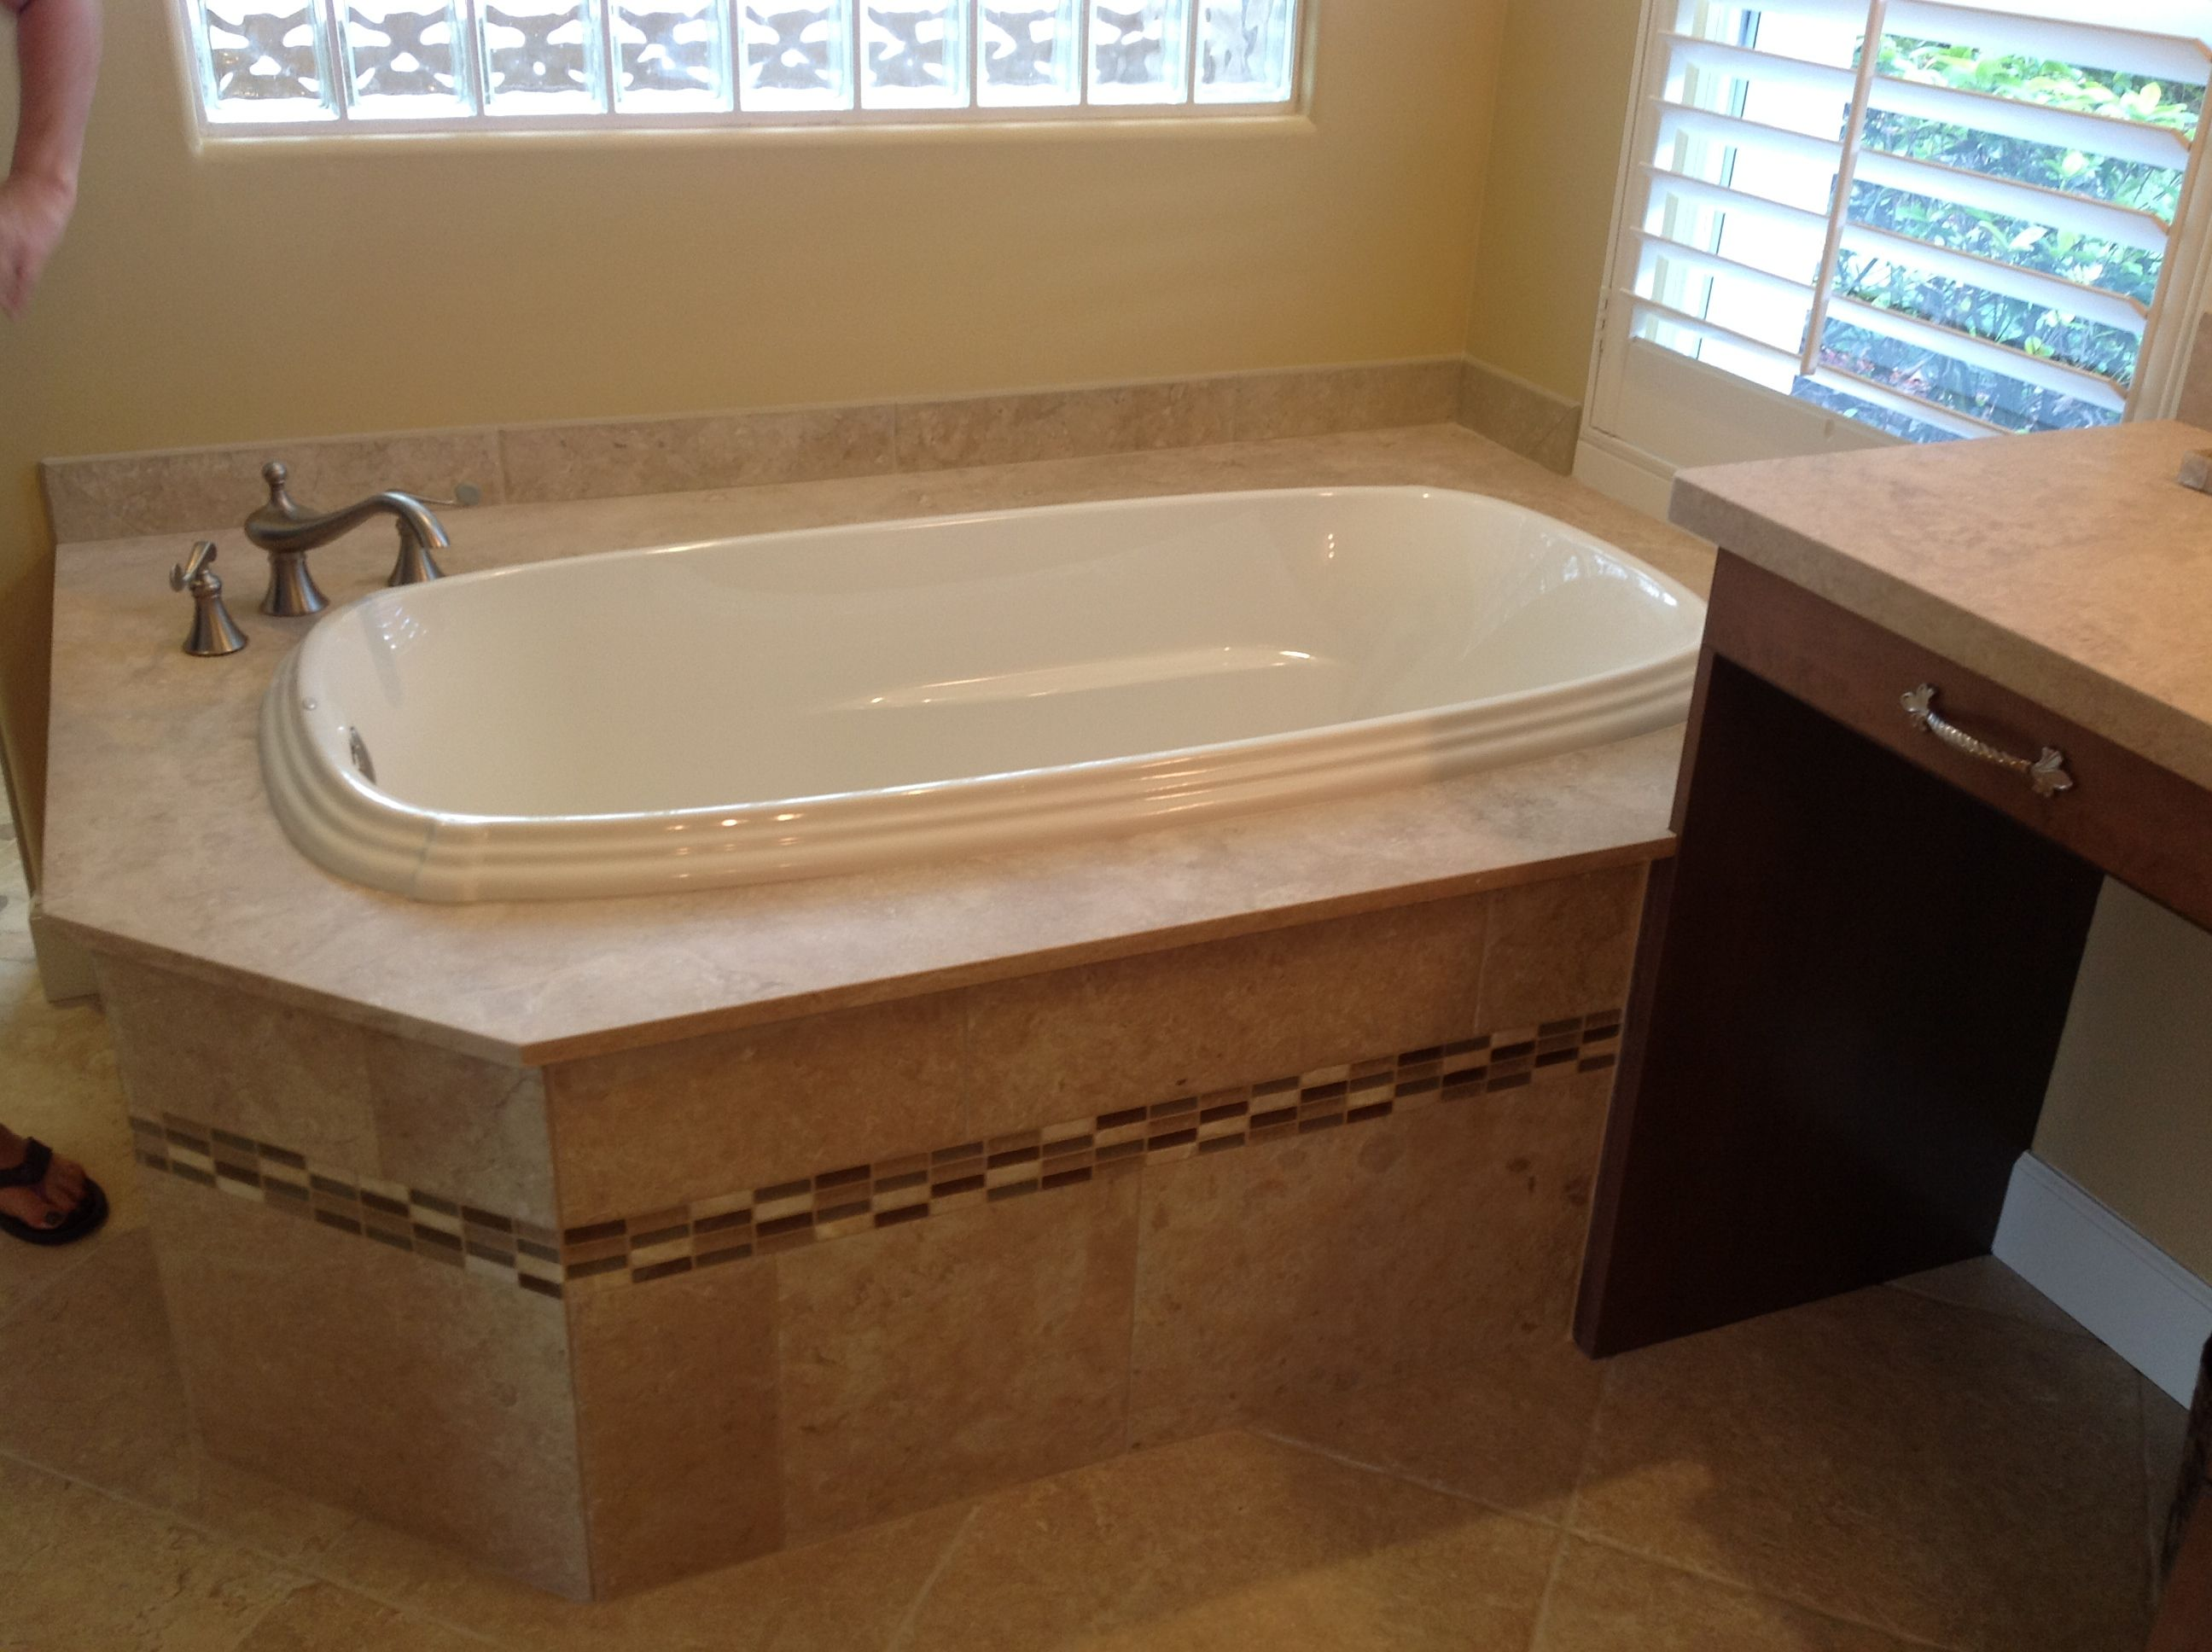 Contemporary condo bath modern bathroom chicago by jill jordan - Custom Tub Deck Constructed From The Schluter System Then Tiled With Italian Stone